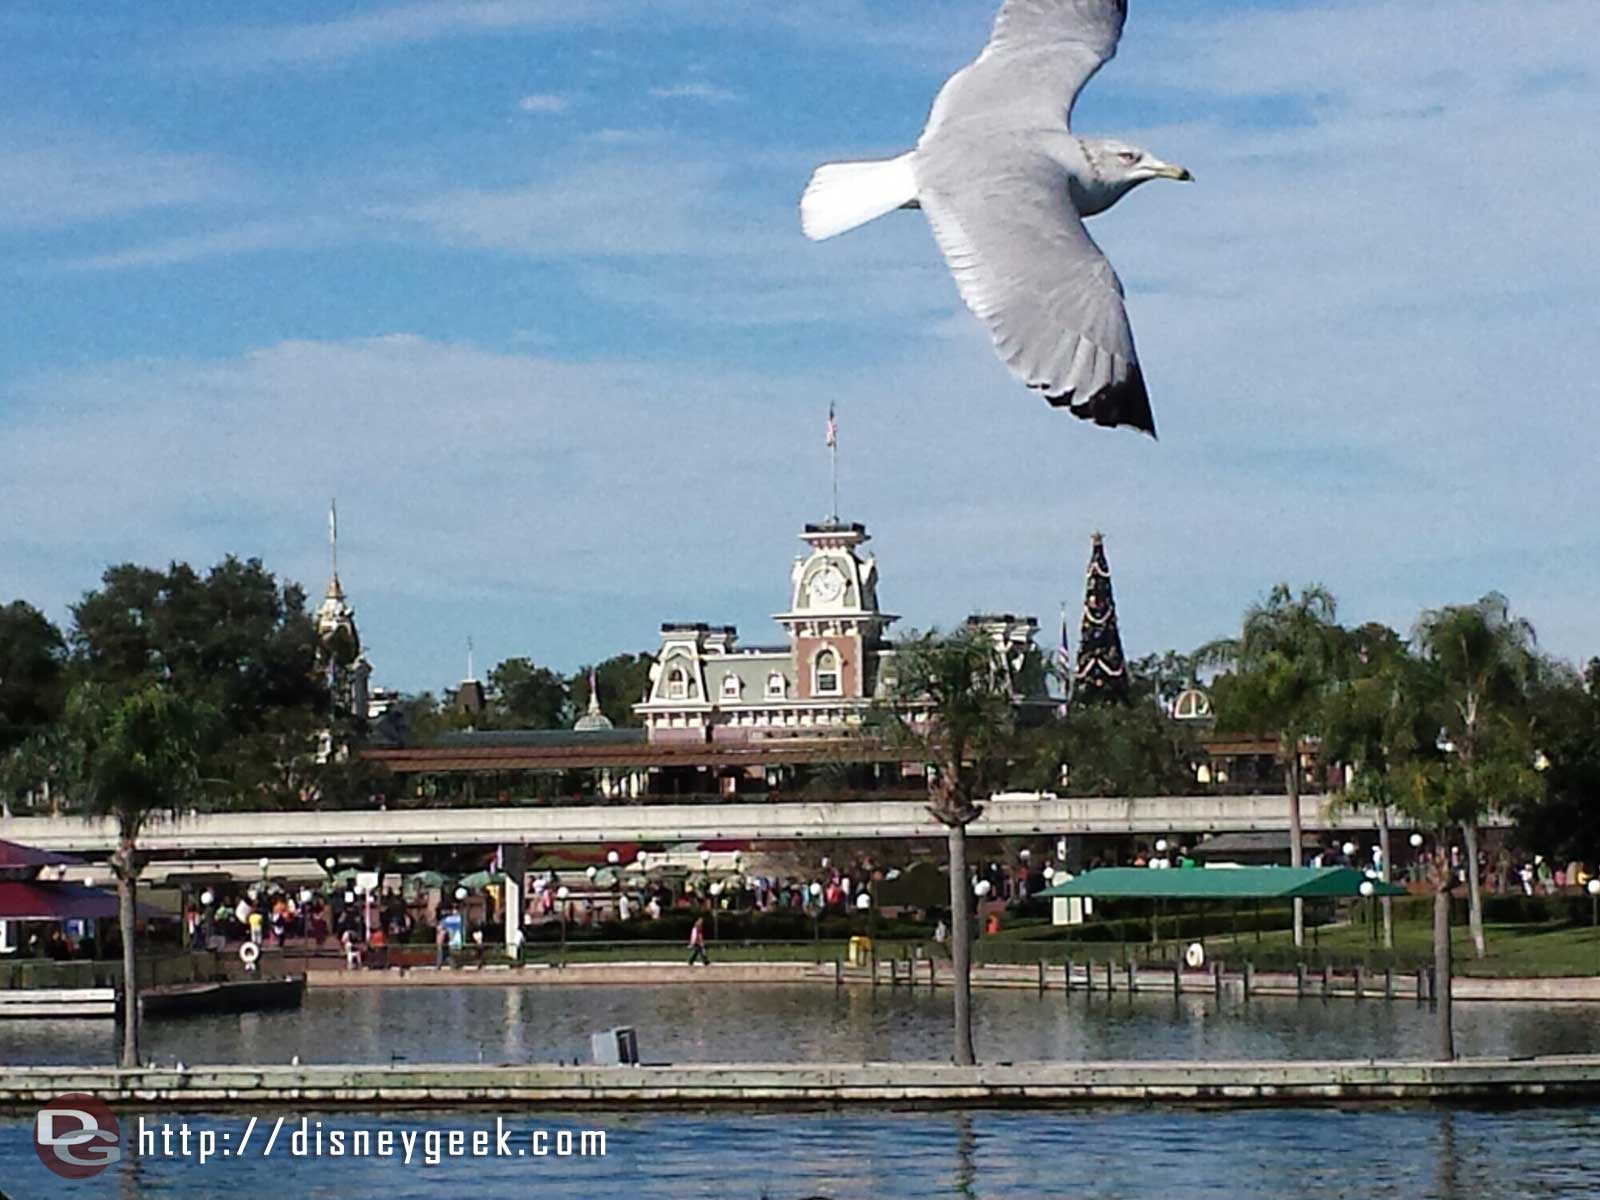 A seagull flew into my picture as we arrived at the Magic Kingdom #WDW